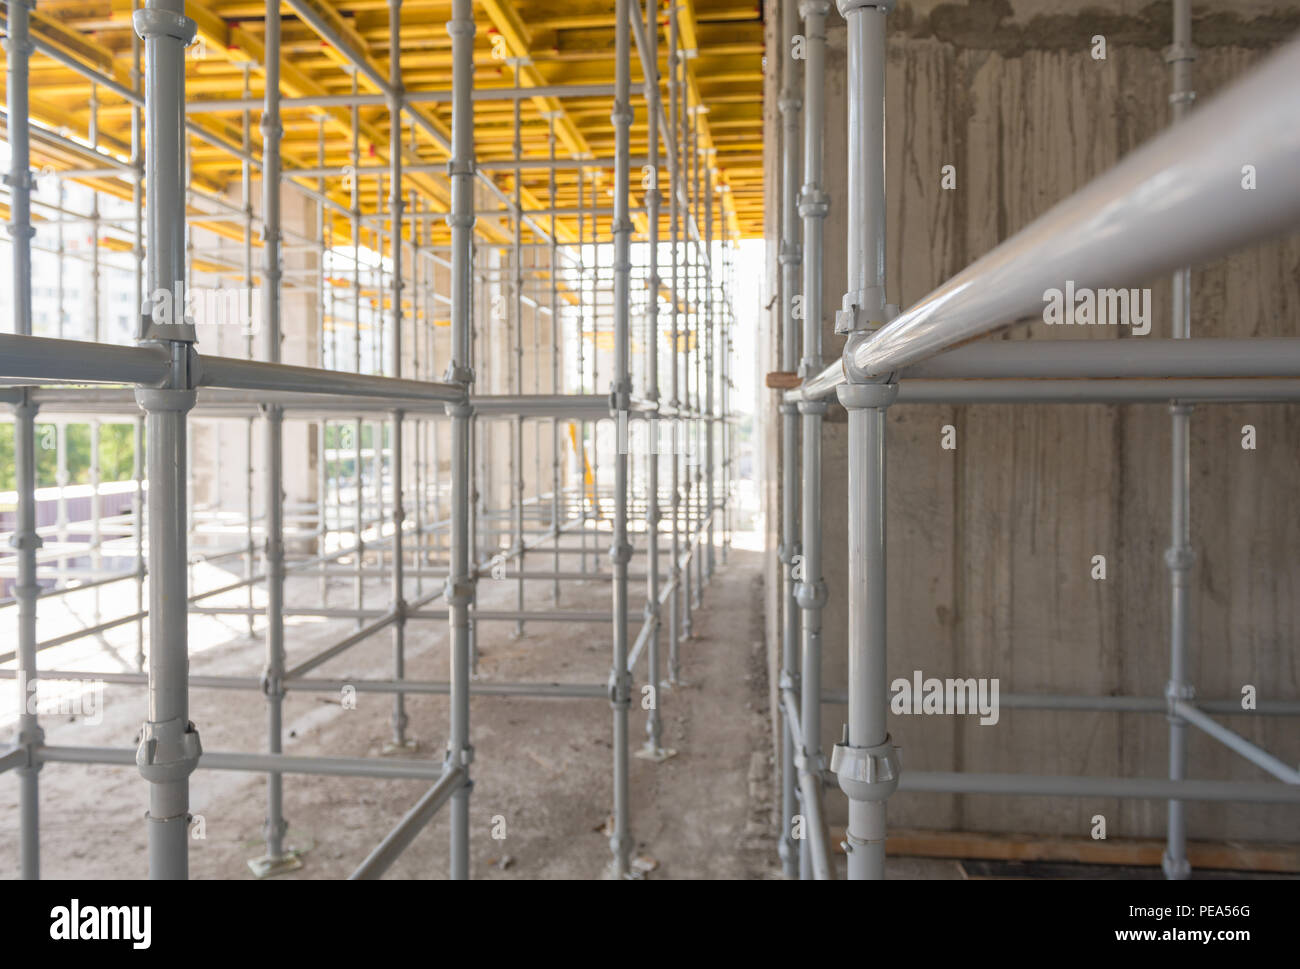 metal and wood scaffolding and supports, construction equipment - Stock Image